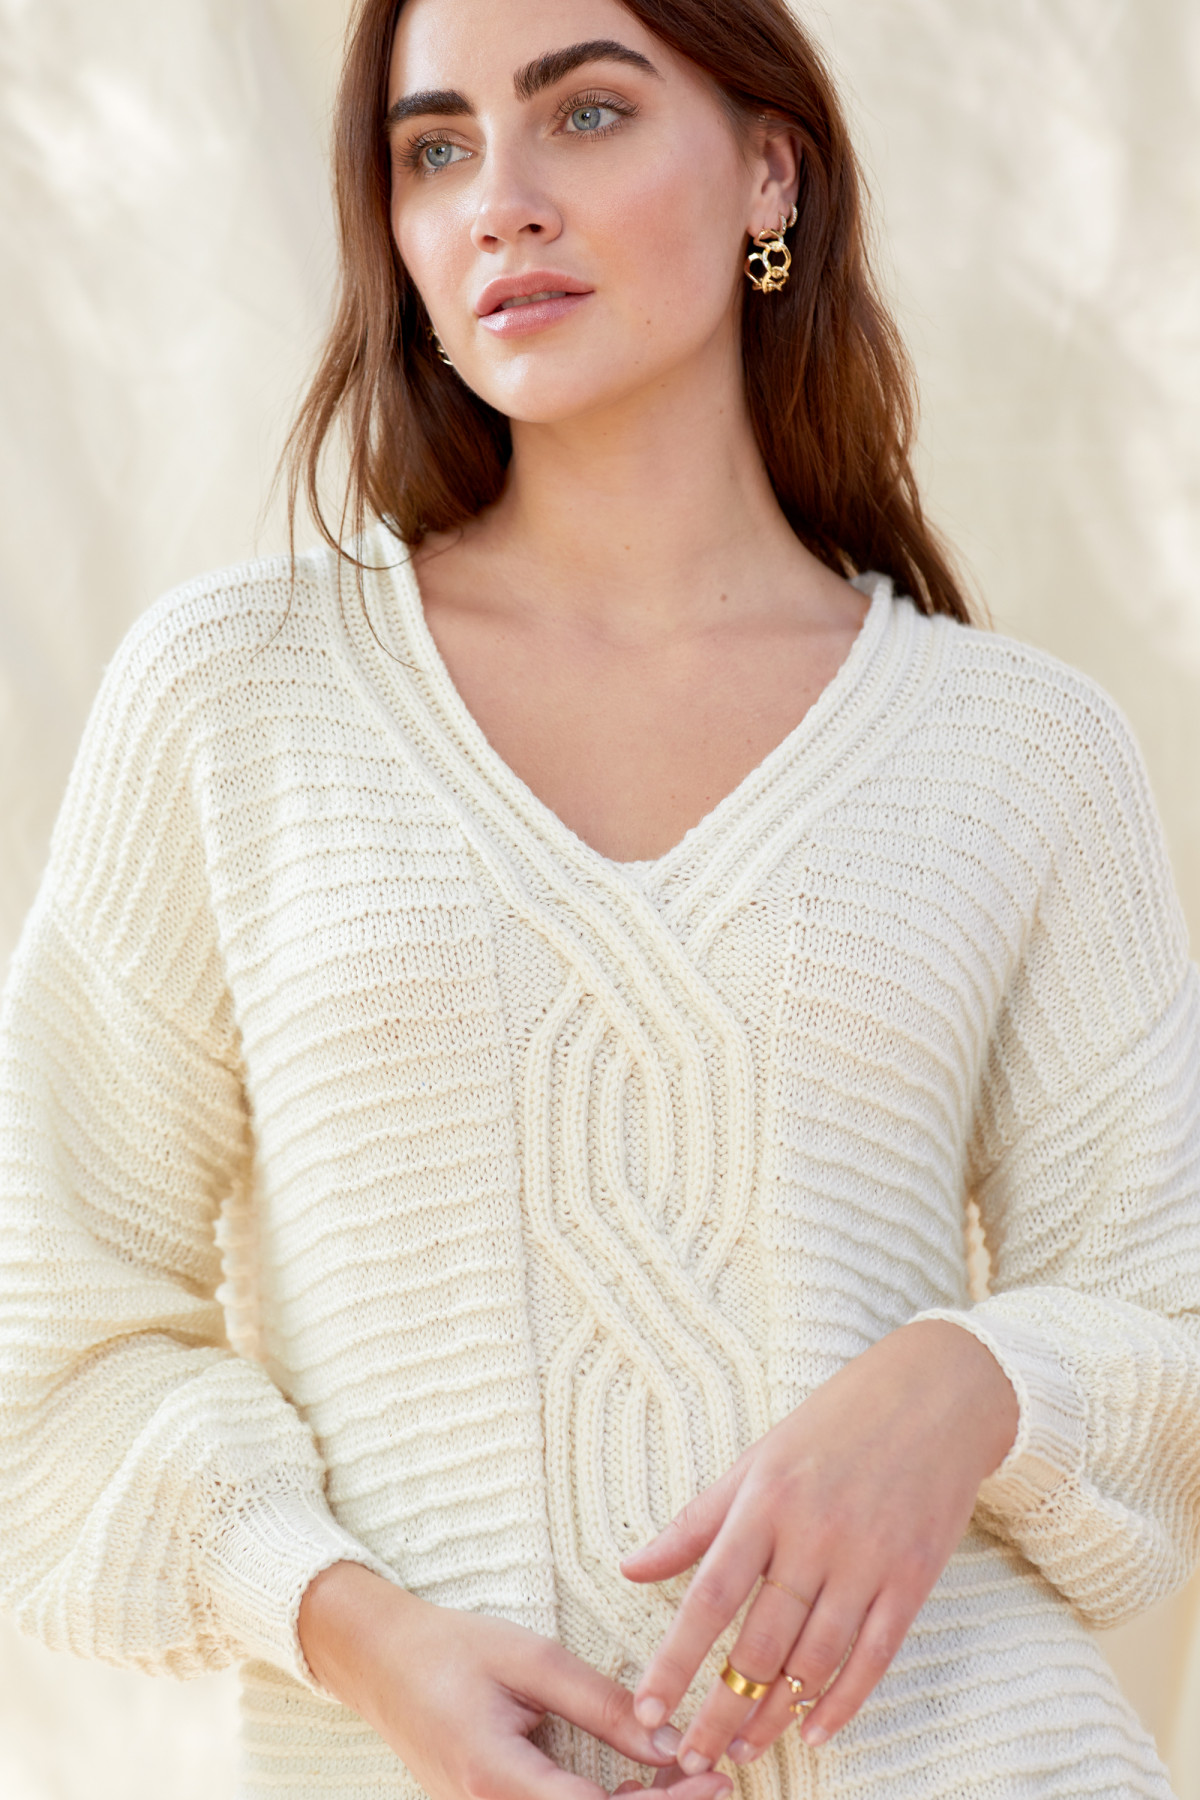 Editorial fashion photography of a dark haired female model wearing an ivory colored knit sweater